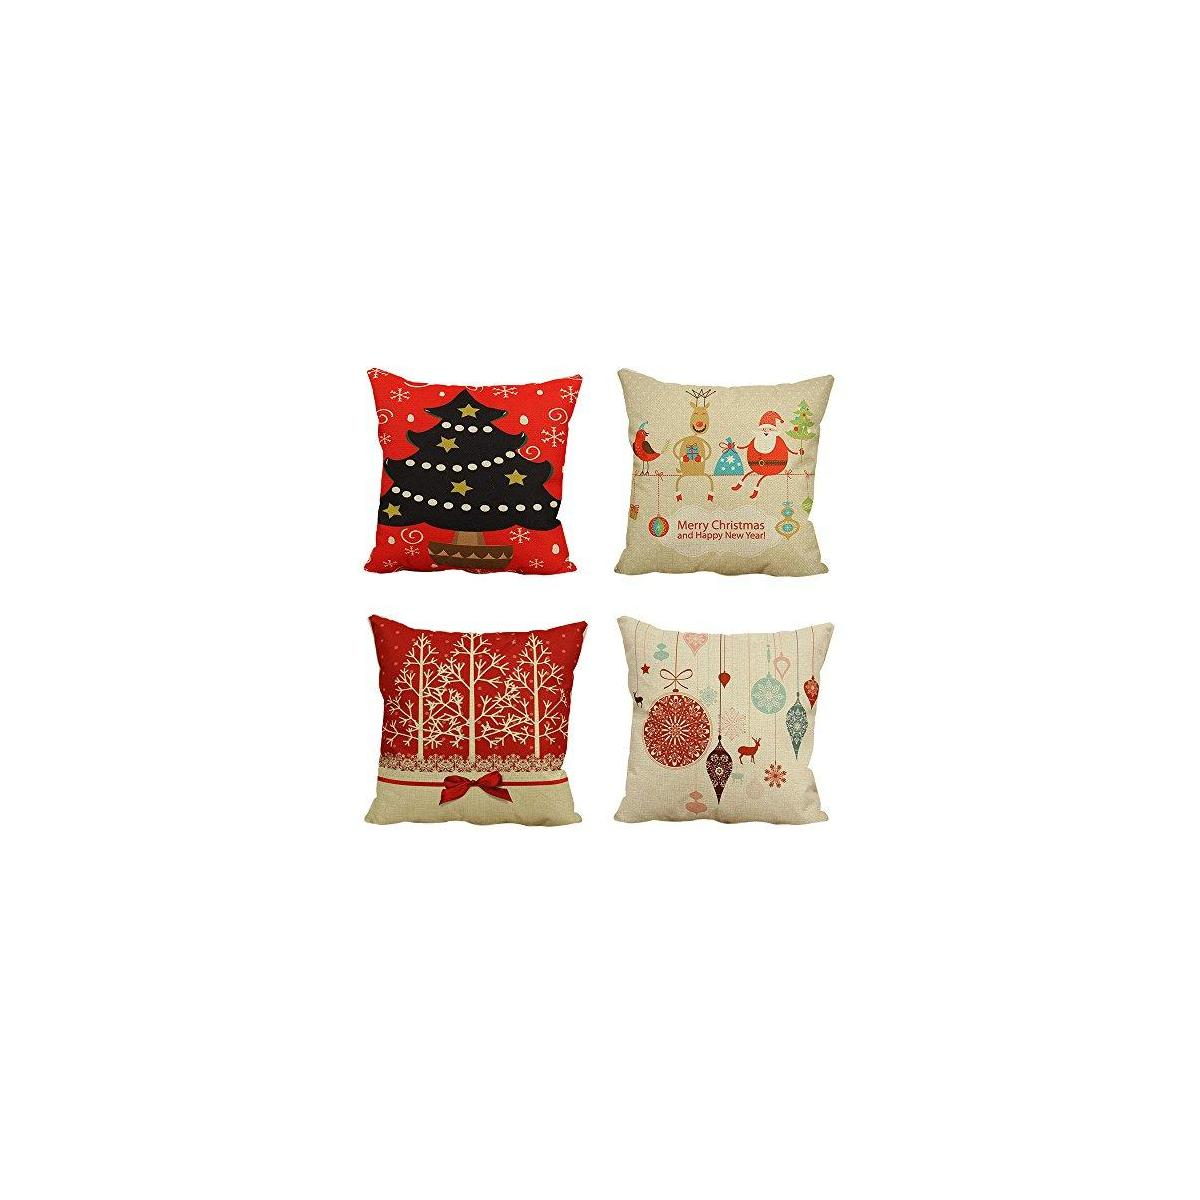 W.A. Portman Christmas Pillow case Covers 18 x 18 Inch Decorative Pillow Covers 4 Pack